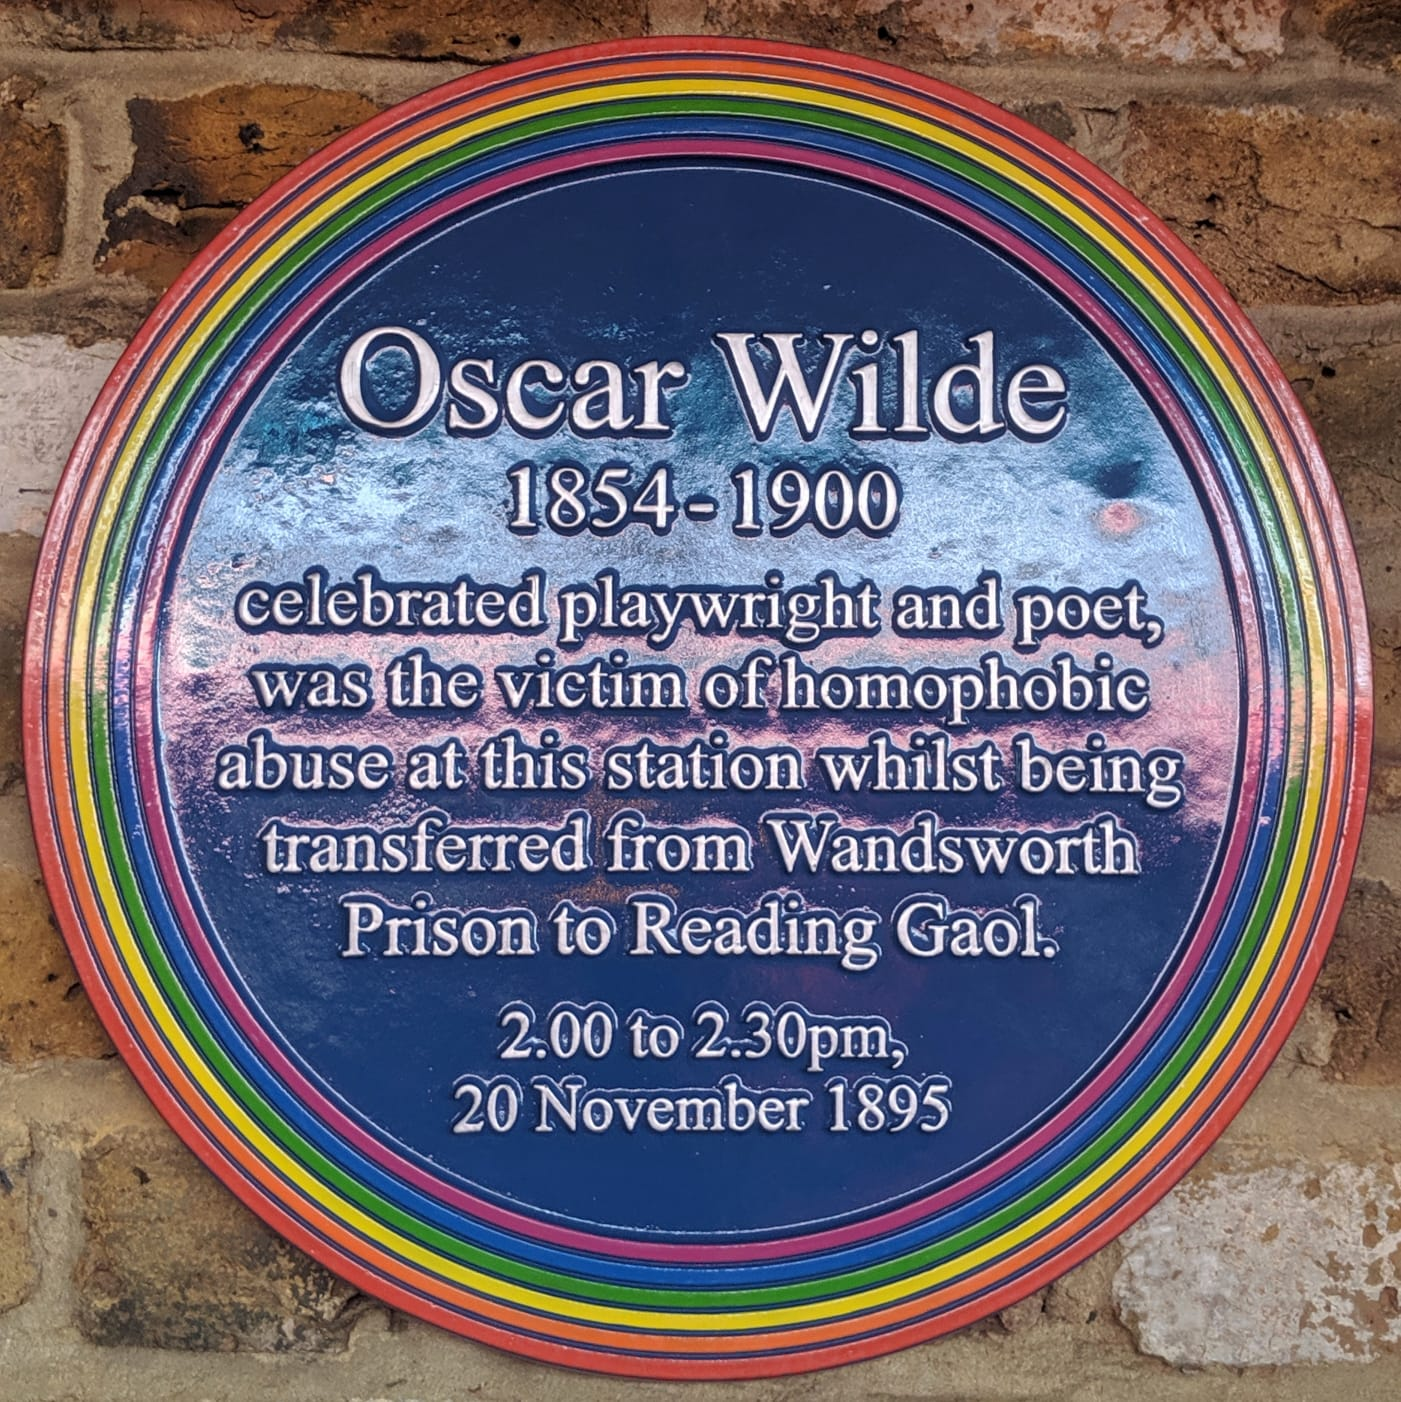 Oscar Wilde plaque at Clapham Junction Station